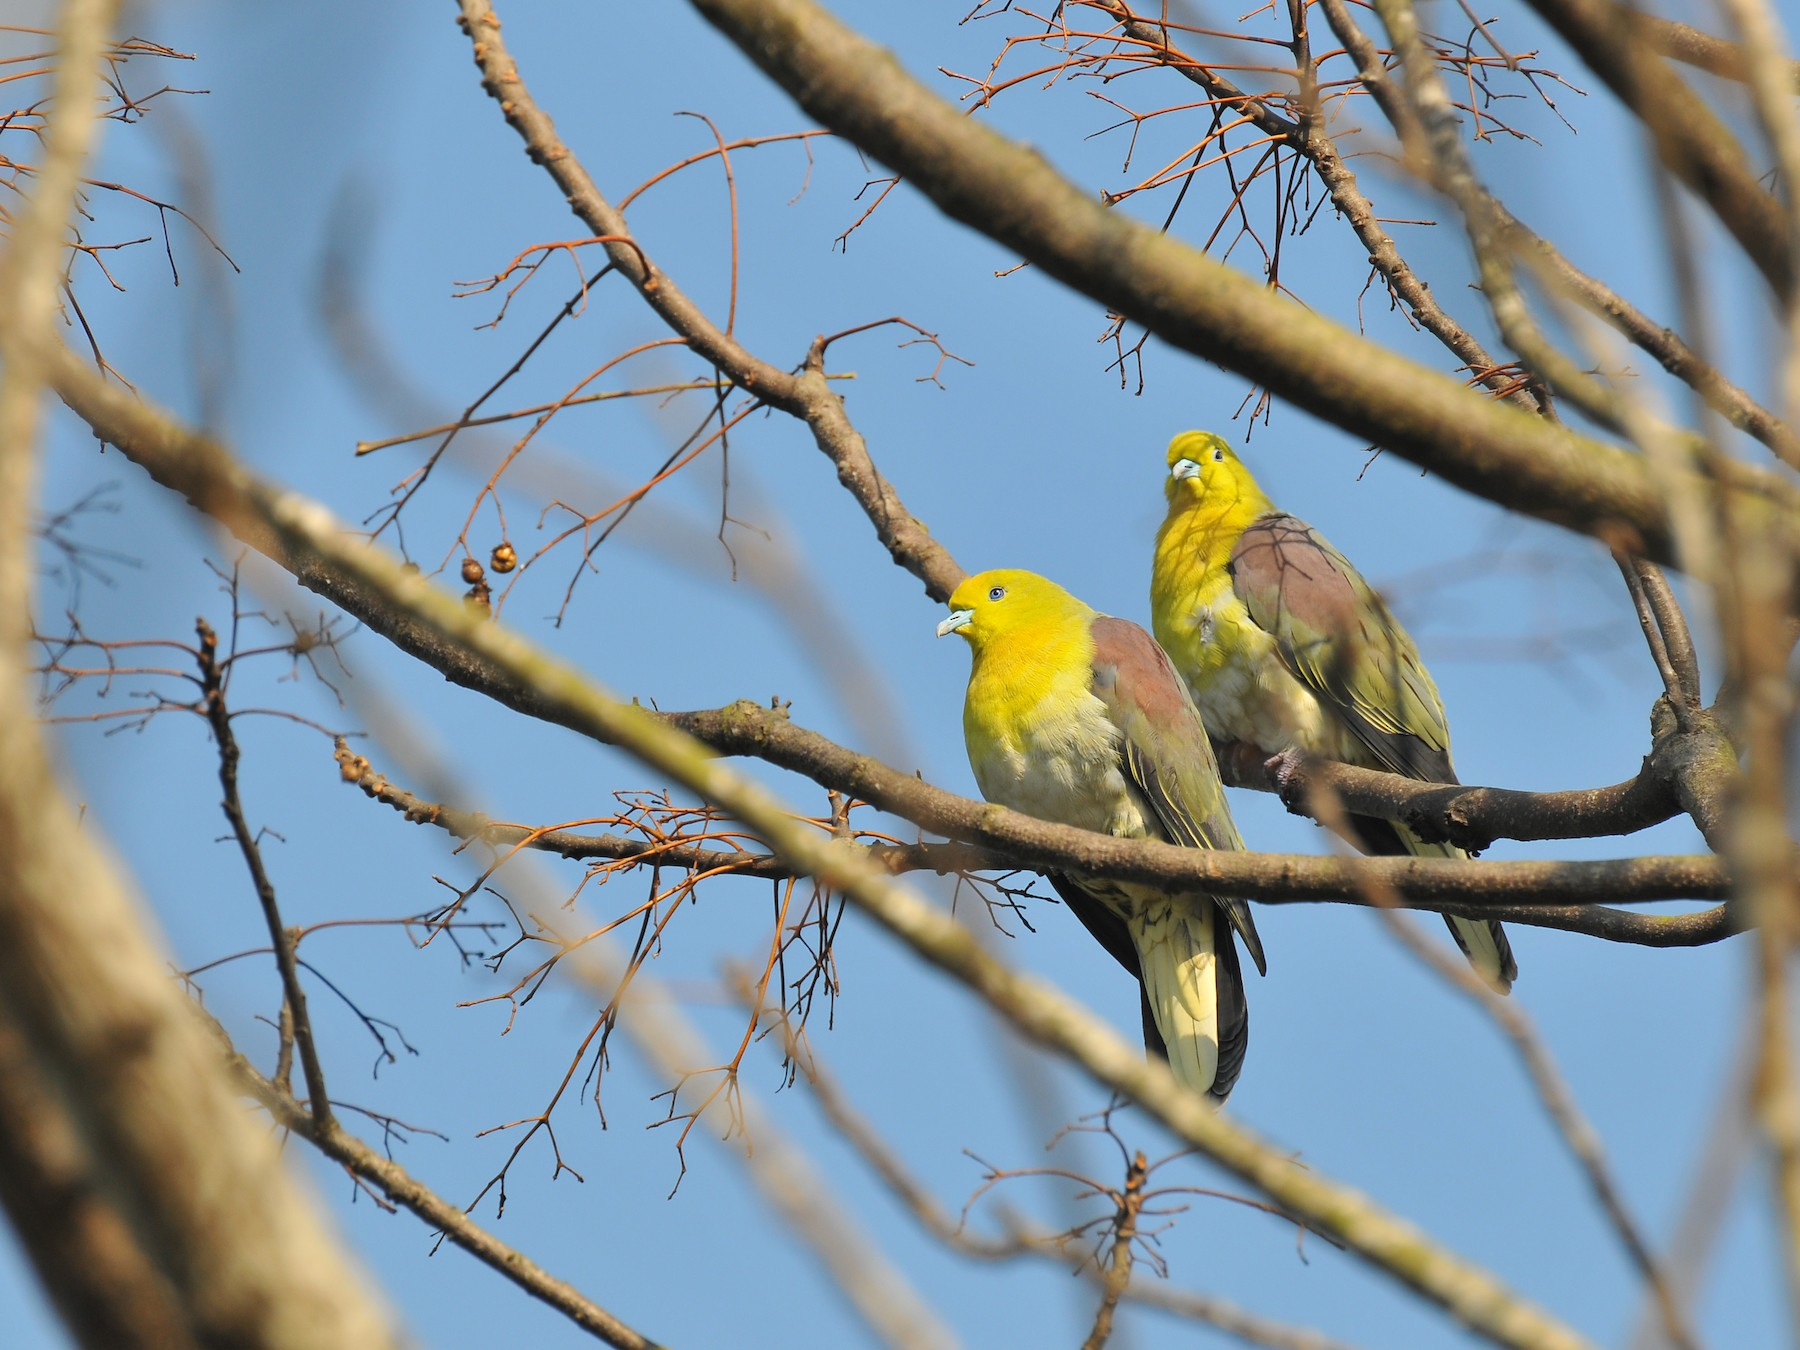 White-bellied Green-Pigeon - Cheng-Ru Tsai